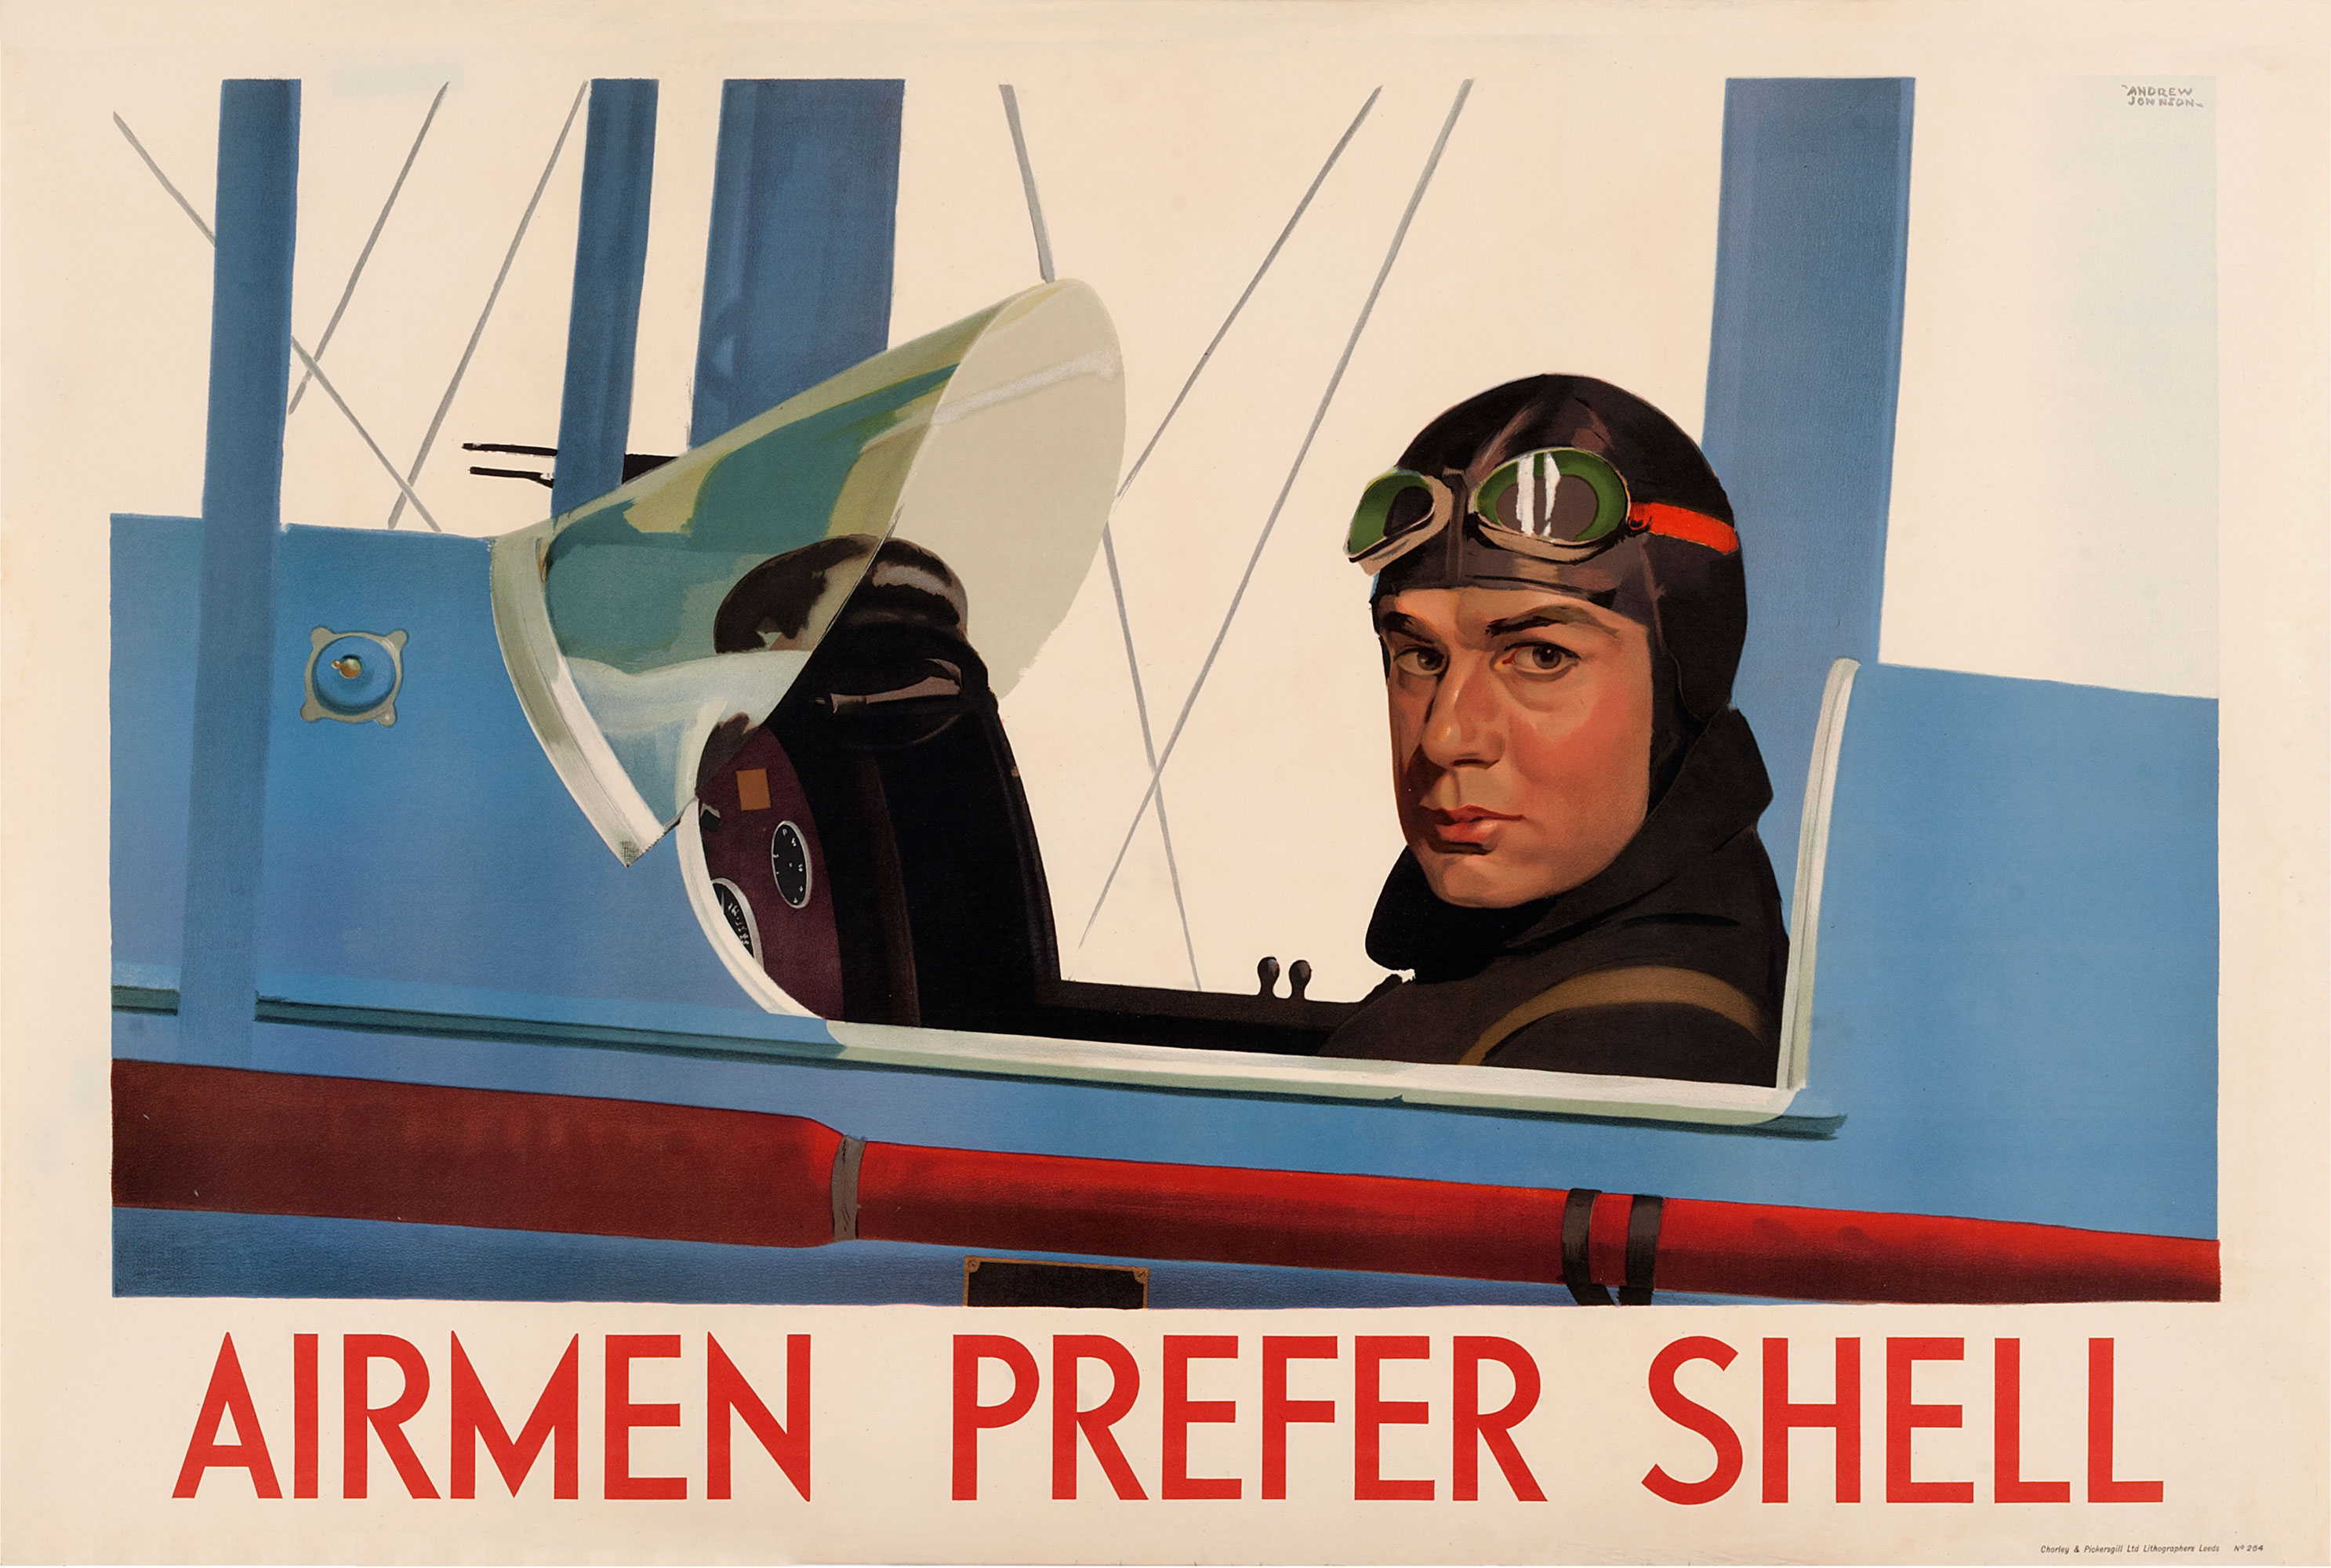 Shell poster number 264, Airmen prefer Shell by Andrew Johnson. Painting of a pilot in close up, sitting in the cockpit of a Gypsy Moth plane.